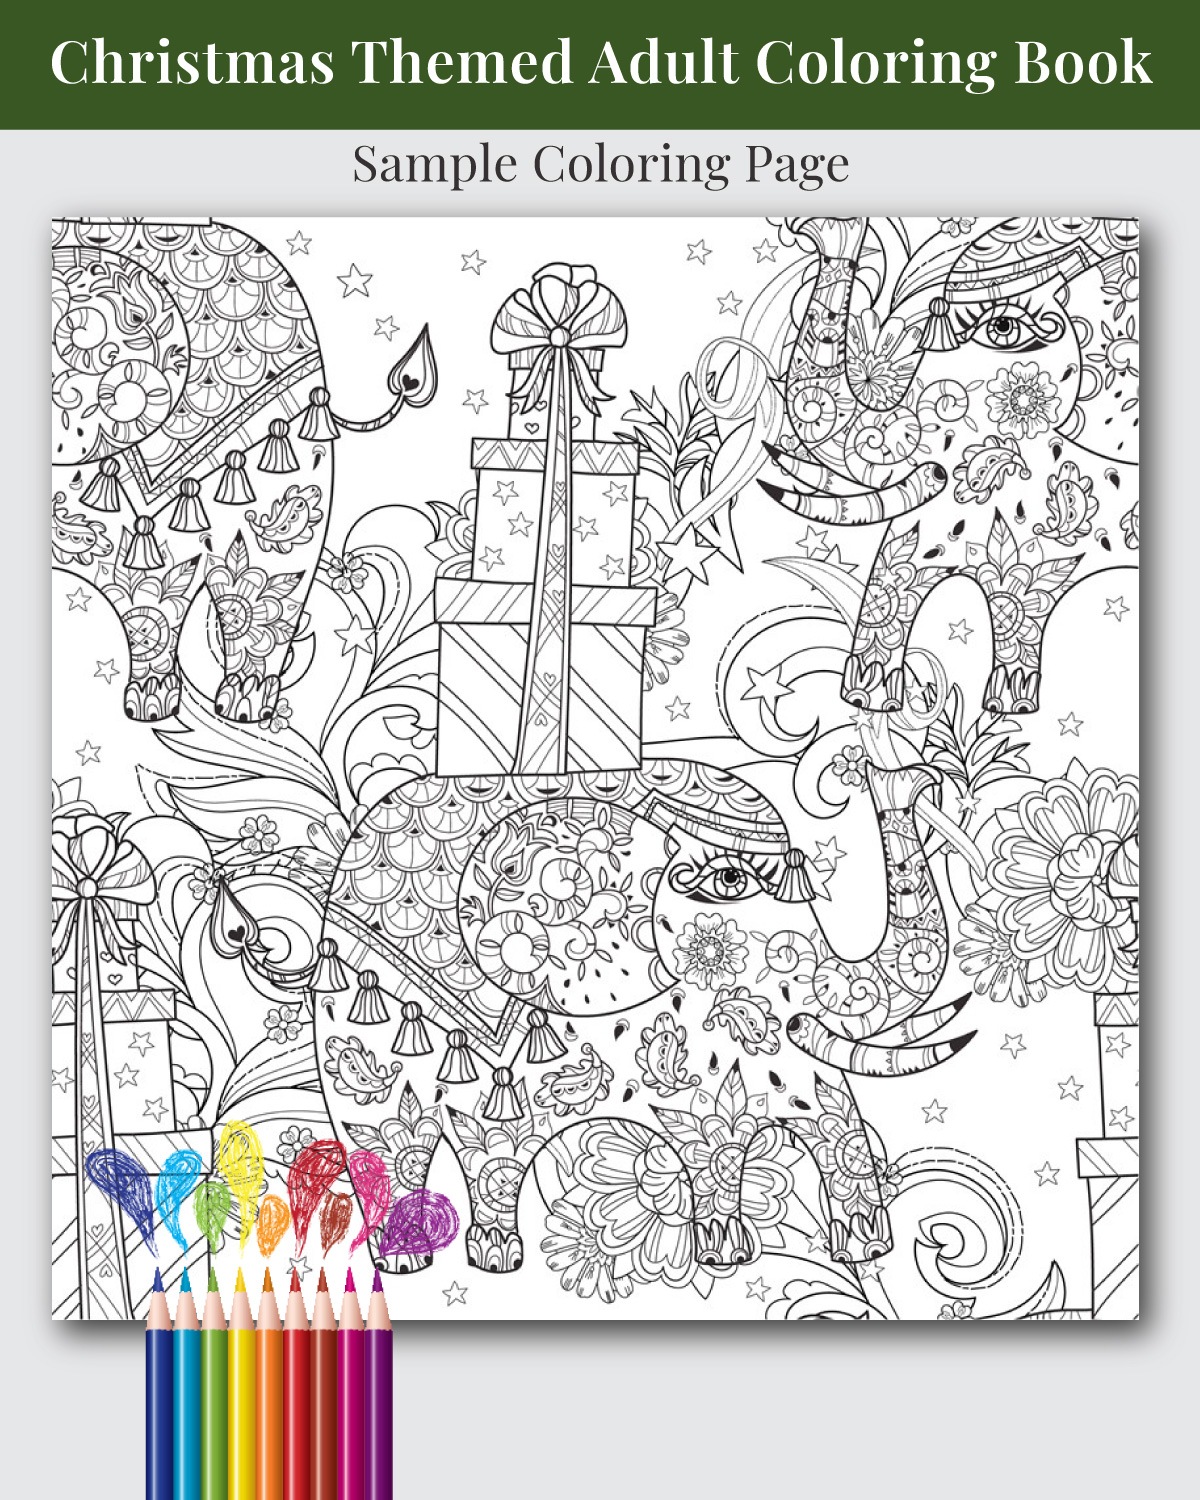 Christmas-Adult-Coloring-Book-Sample-02